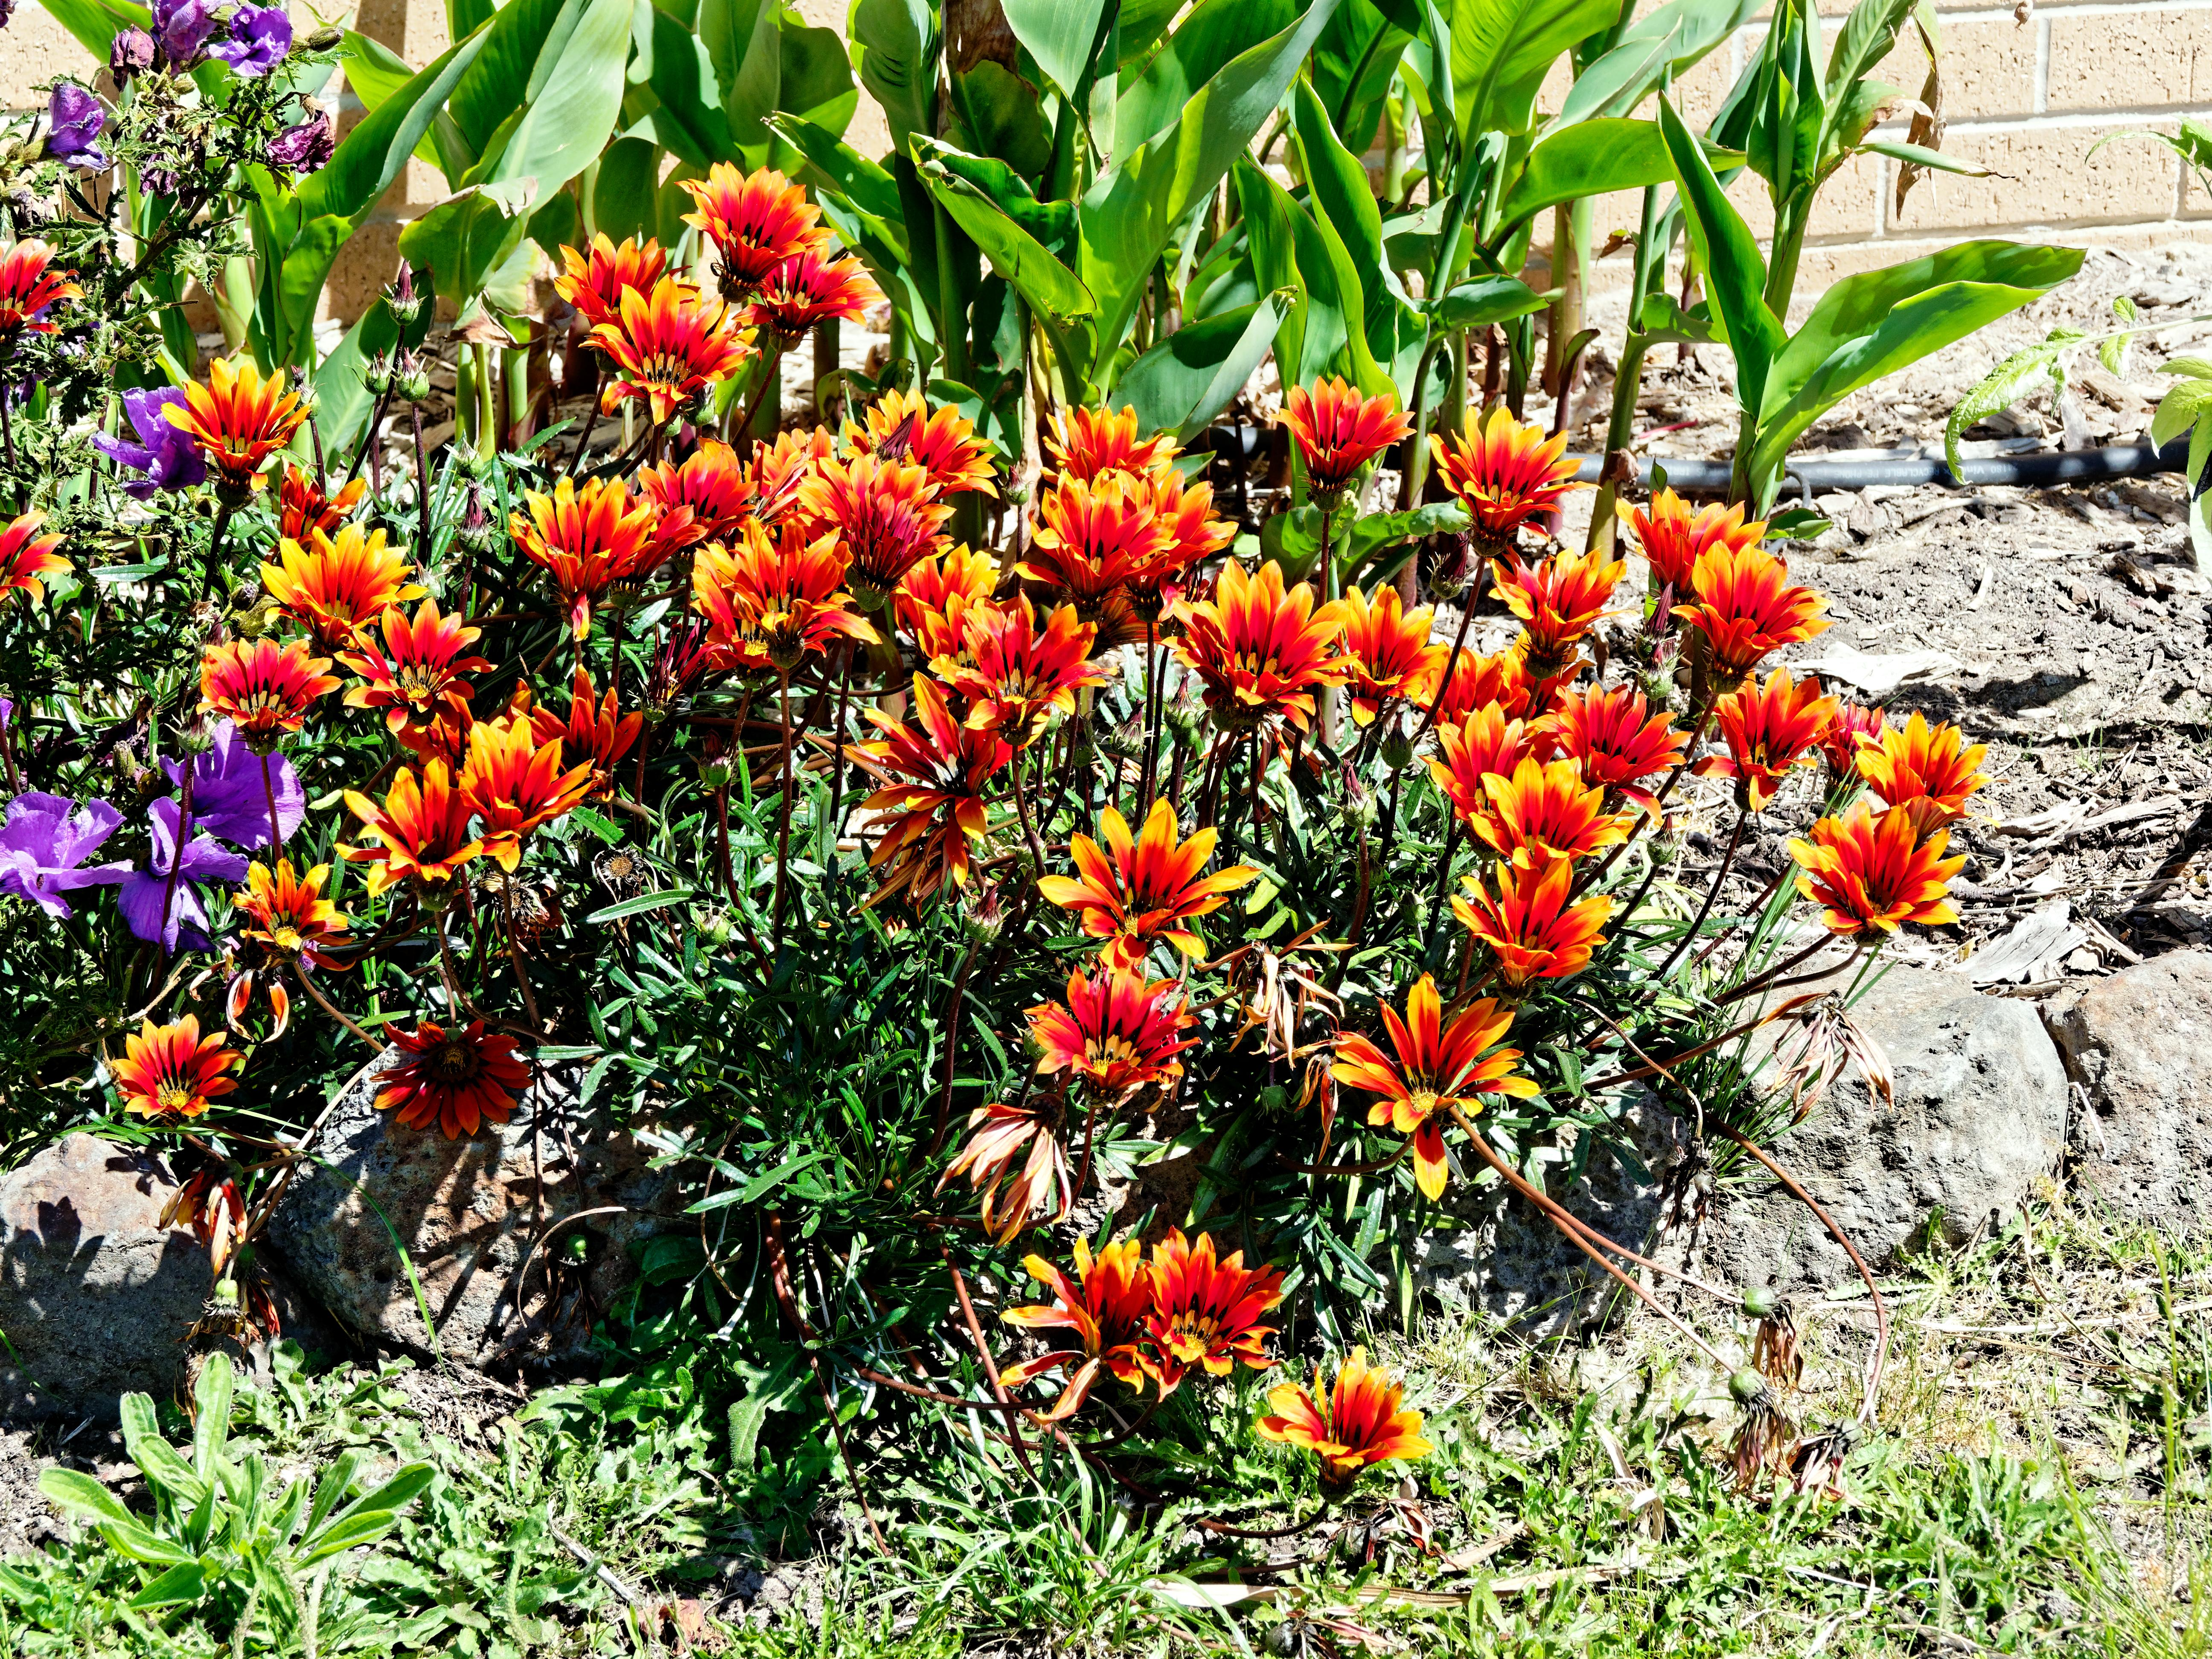 This should be Gazania-1.jpeg.  Is it missing?